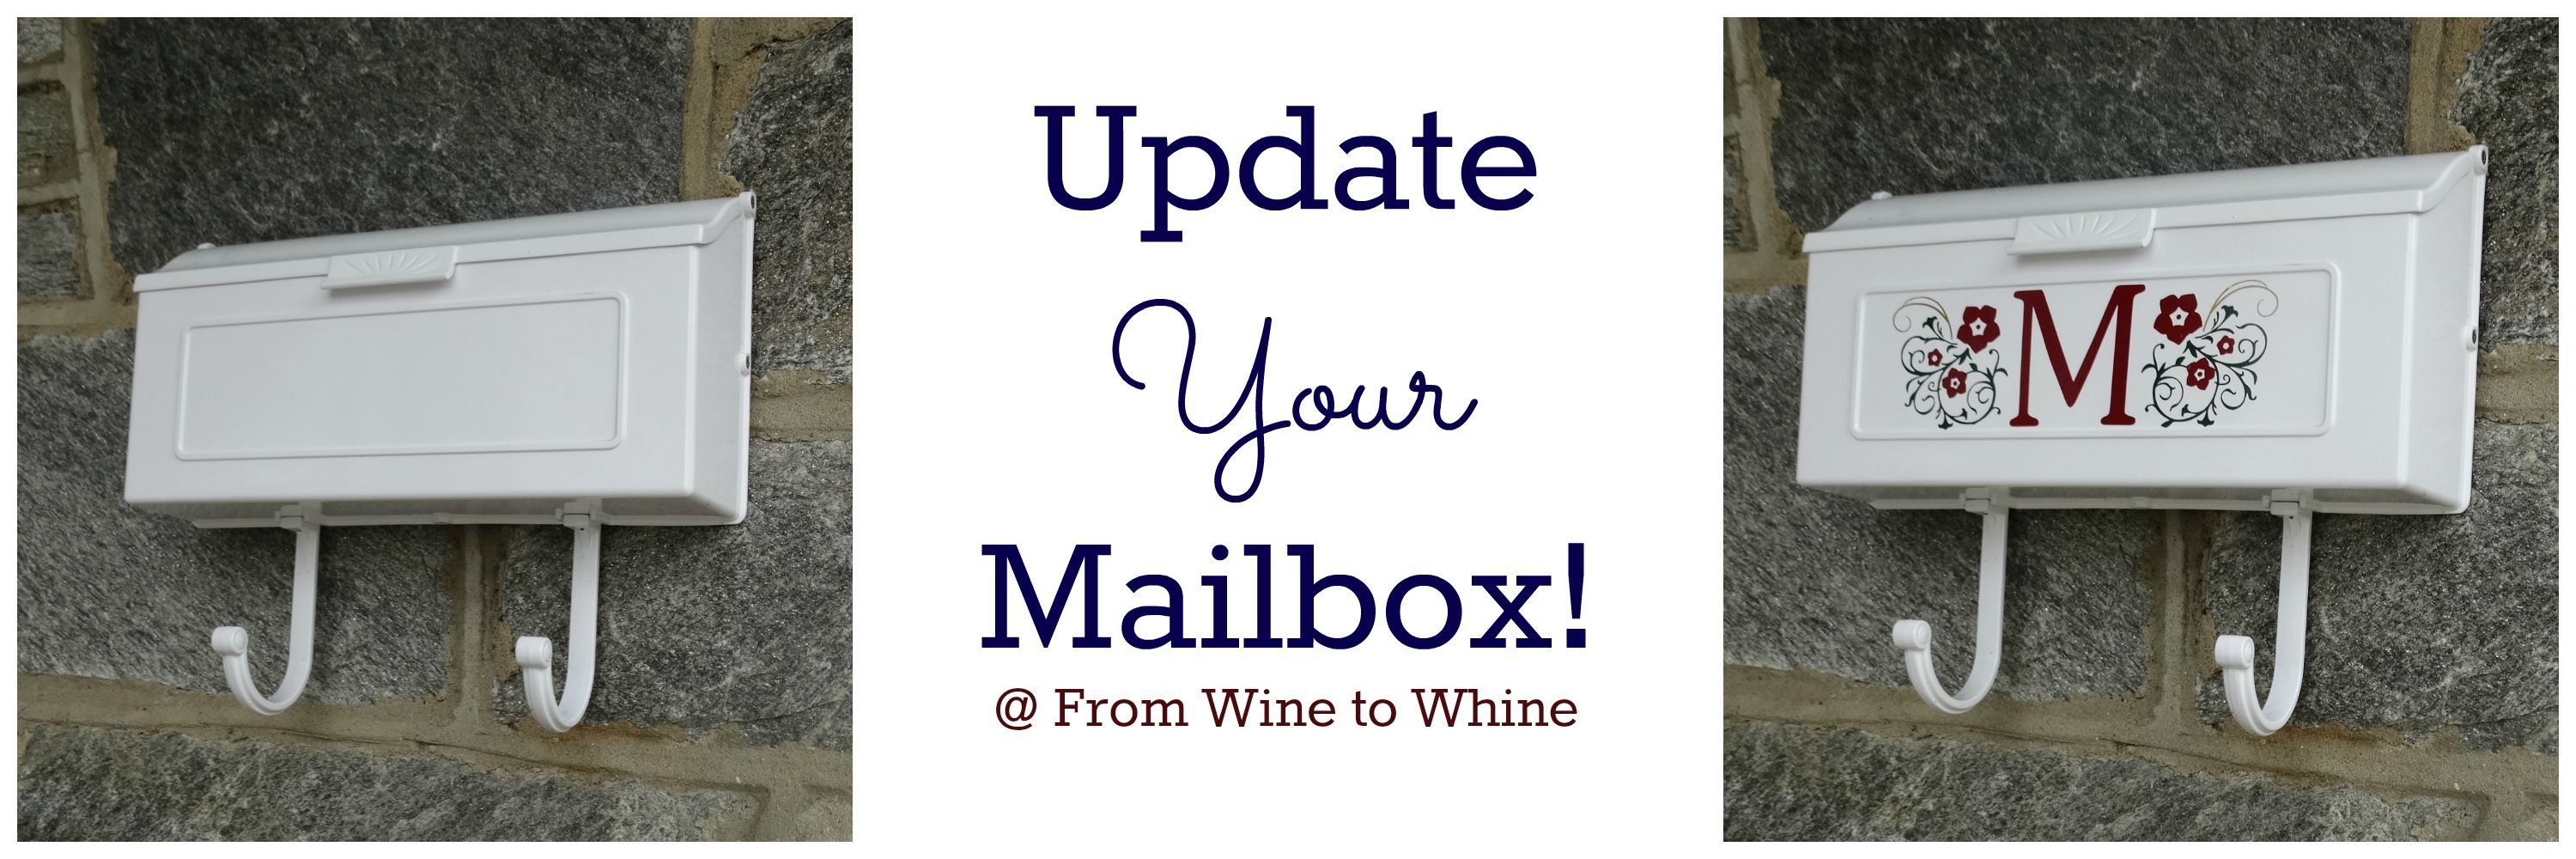 Update Your Mailbox